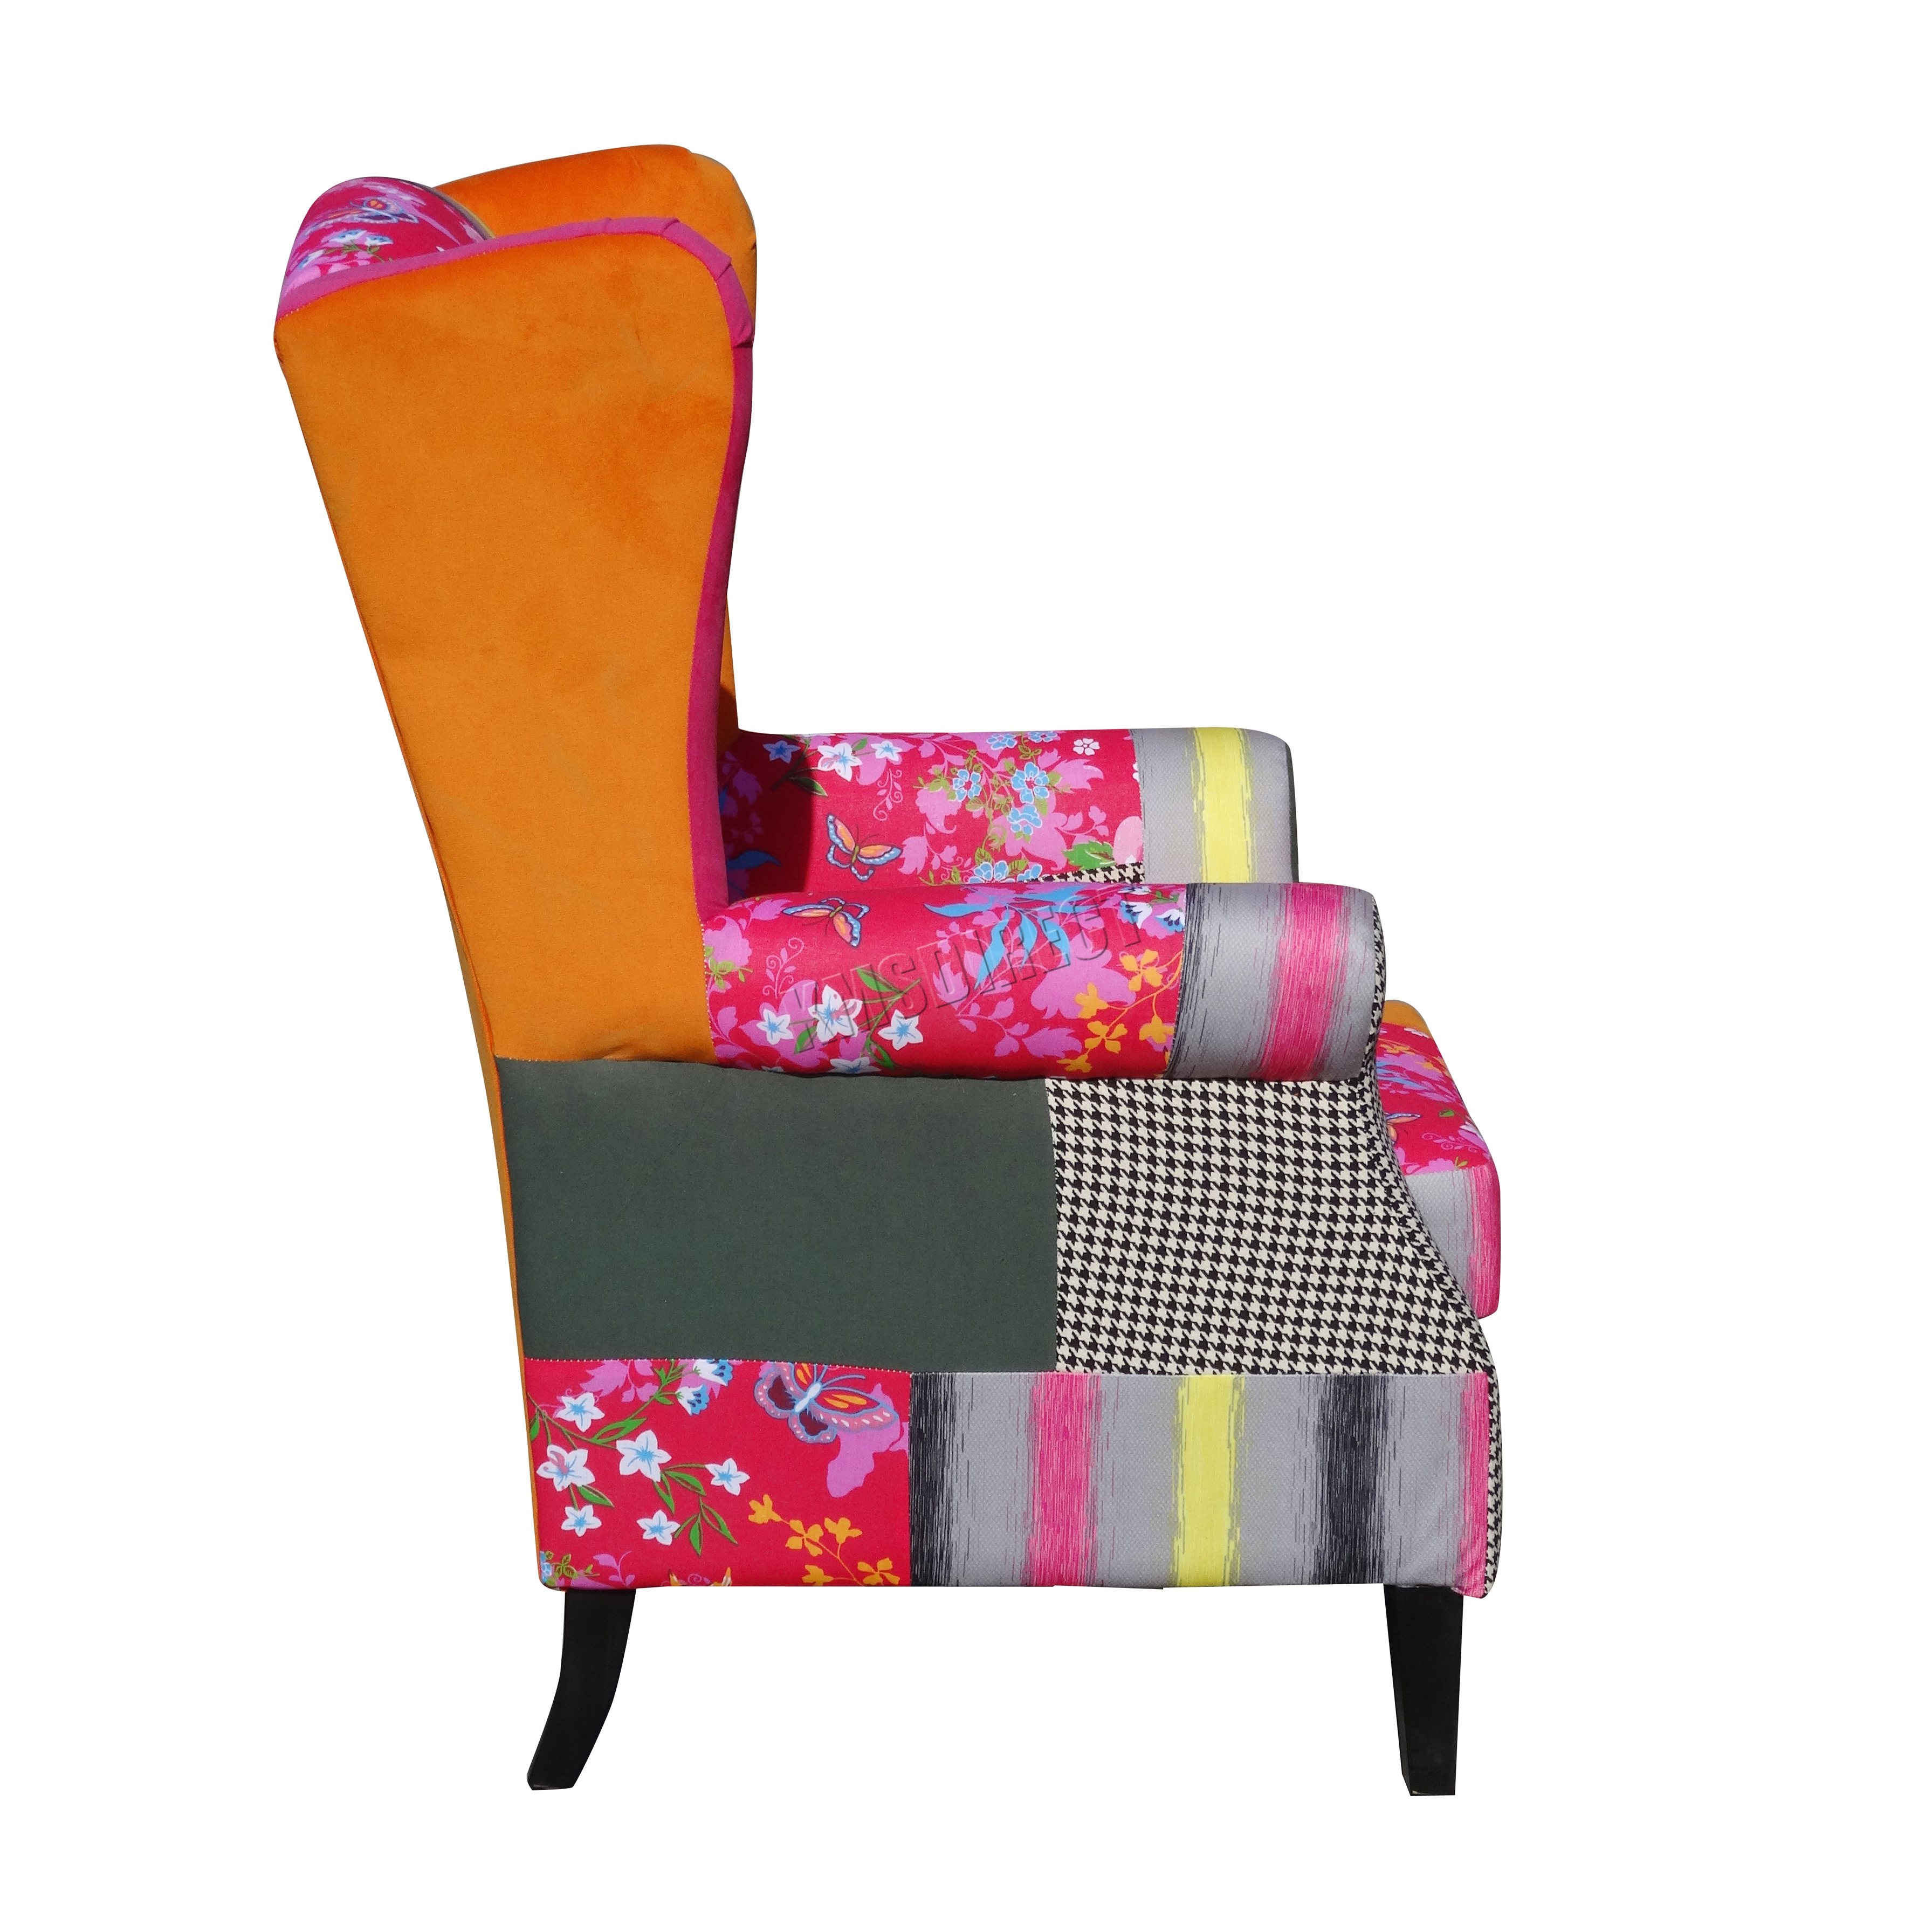 FoxHunter Patchwork Chair Fabric Vintage Armchair Seat  : PATCHWORK CHAIR PC071 KMSWM04 from www.ebay.co.uk size 3583 x 3583 jpeg 2972kB